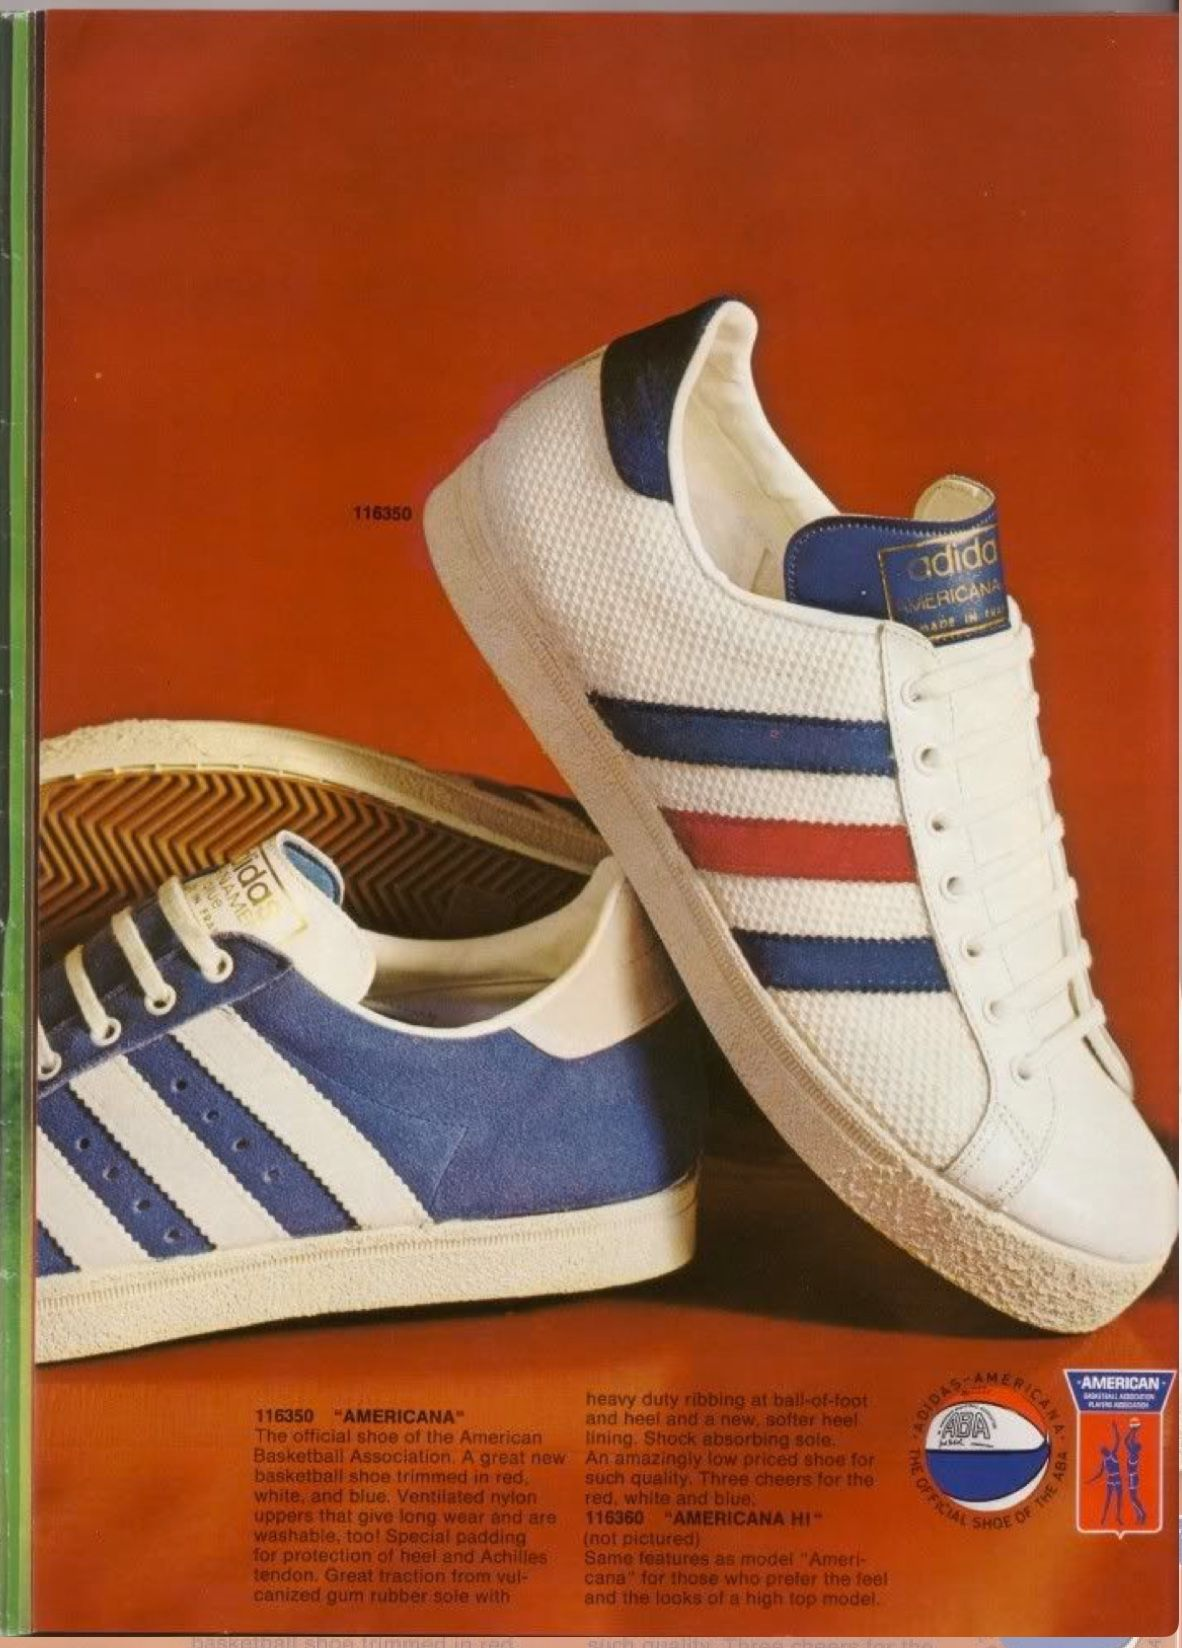 propietario Misterio comodidad  Pin by Sole-Fusion-Footwear on adidas Originals Trainers,Sneakers,Vintage  Shoe Adverts,Posters,Image Archive History,Rare Promotional Advertisements.  All adidas footwear s… | Adidas fashion, Vintage adidas, Adidas classic